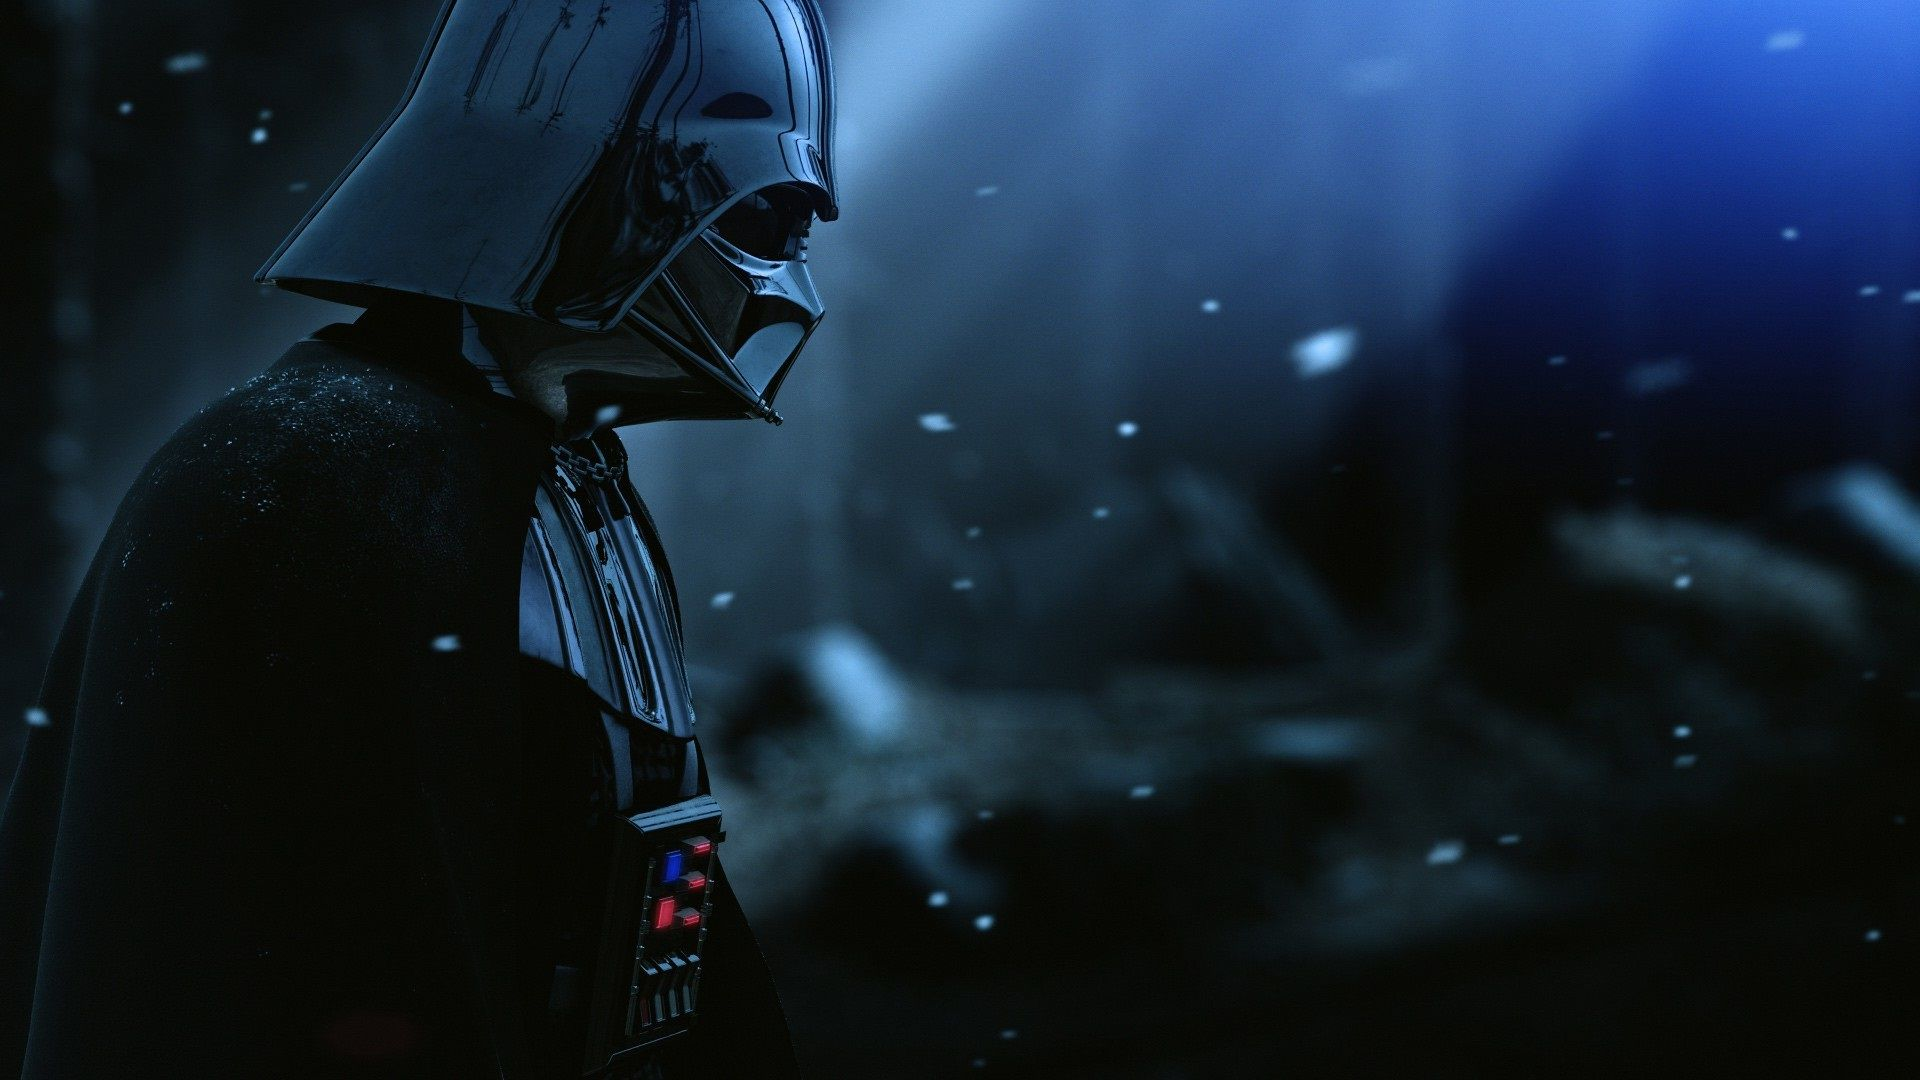 Star Wars Wallpaper Hd Darth Vader Wallpaper Star Wars Background Star Wars Wallpaper